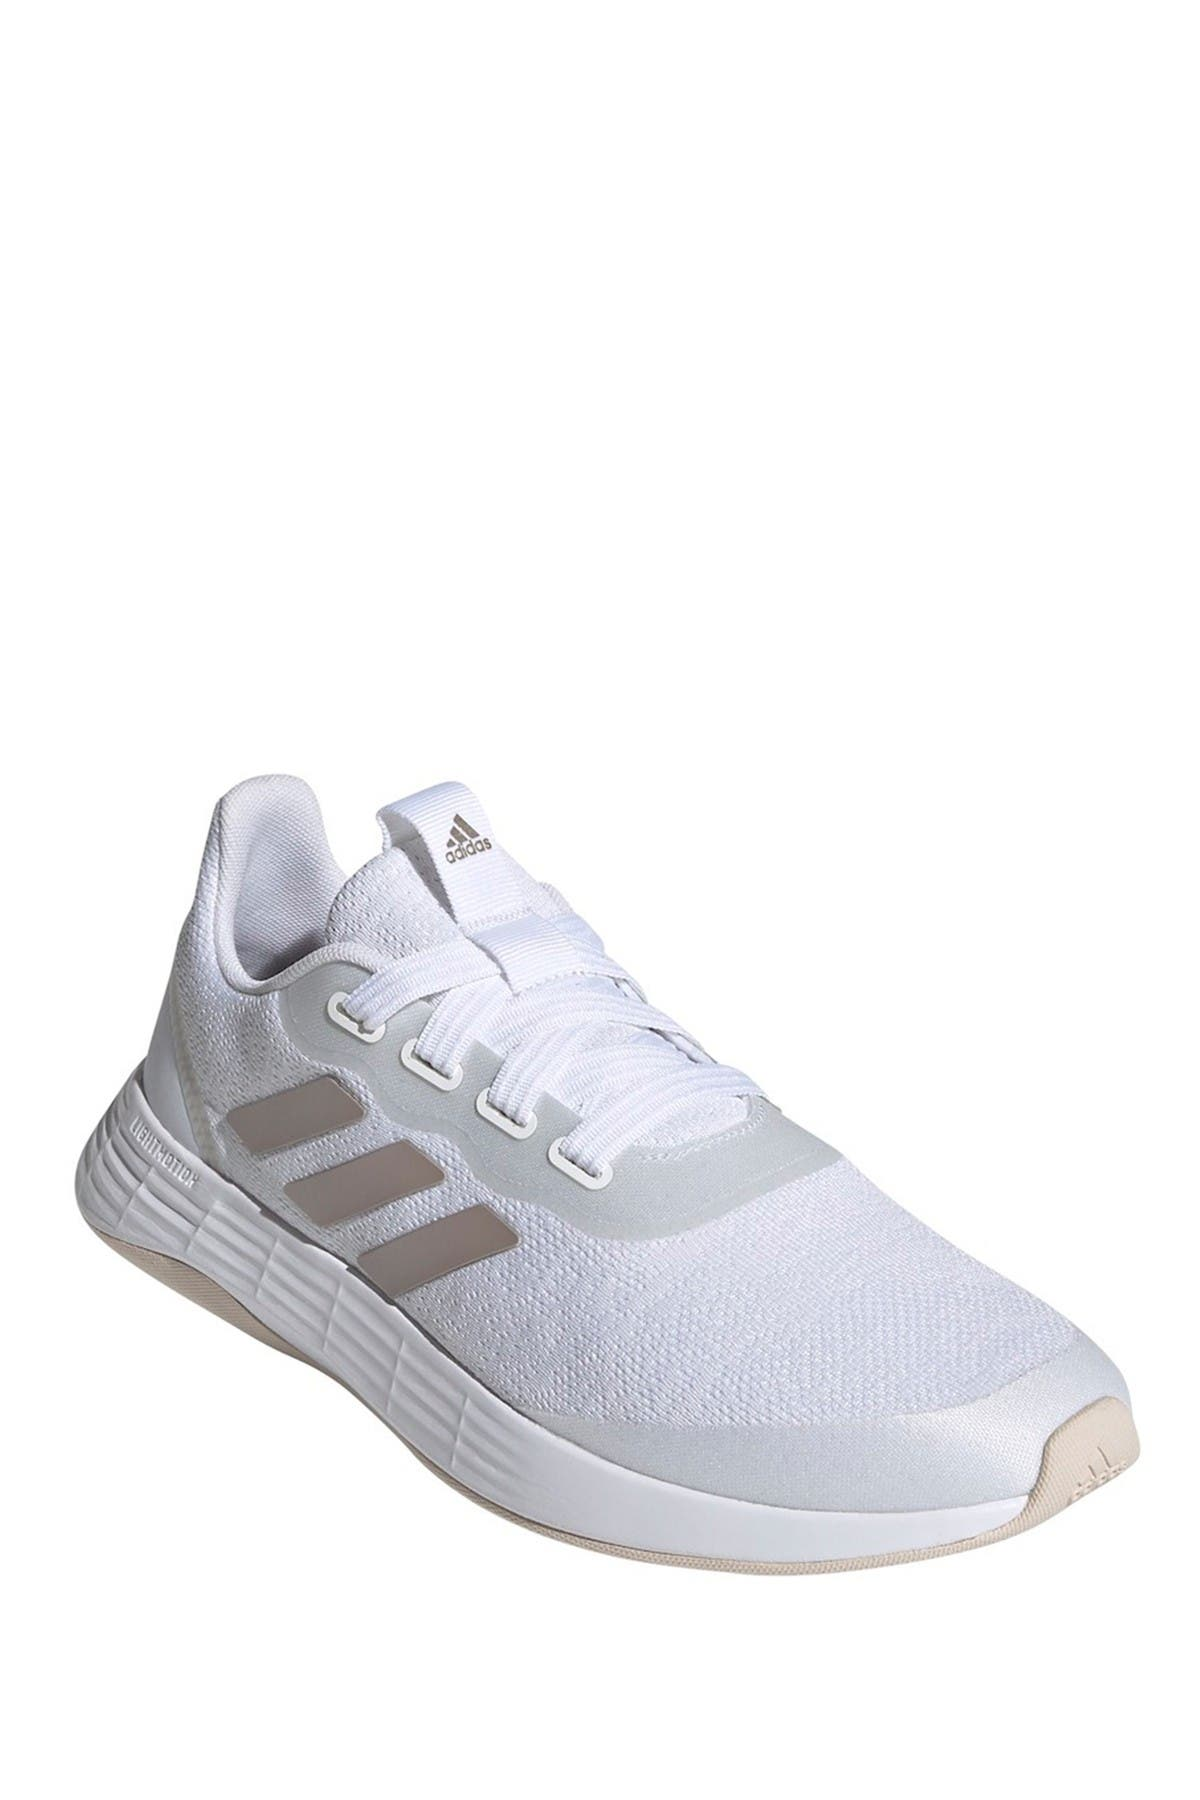 Image of adidas Qt Racer Sport Sneaker